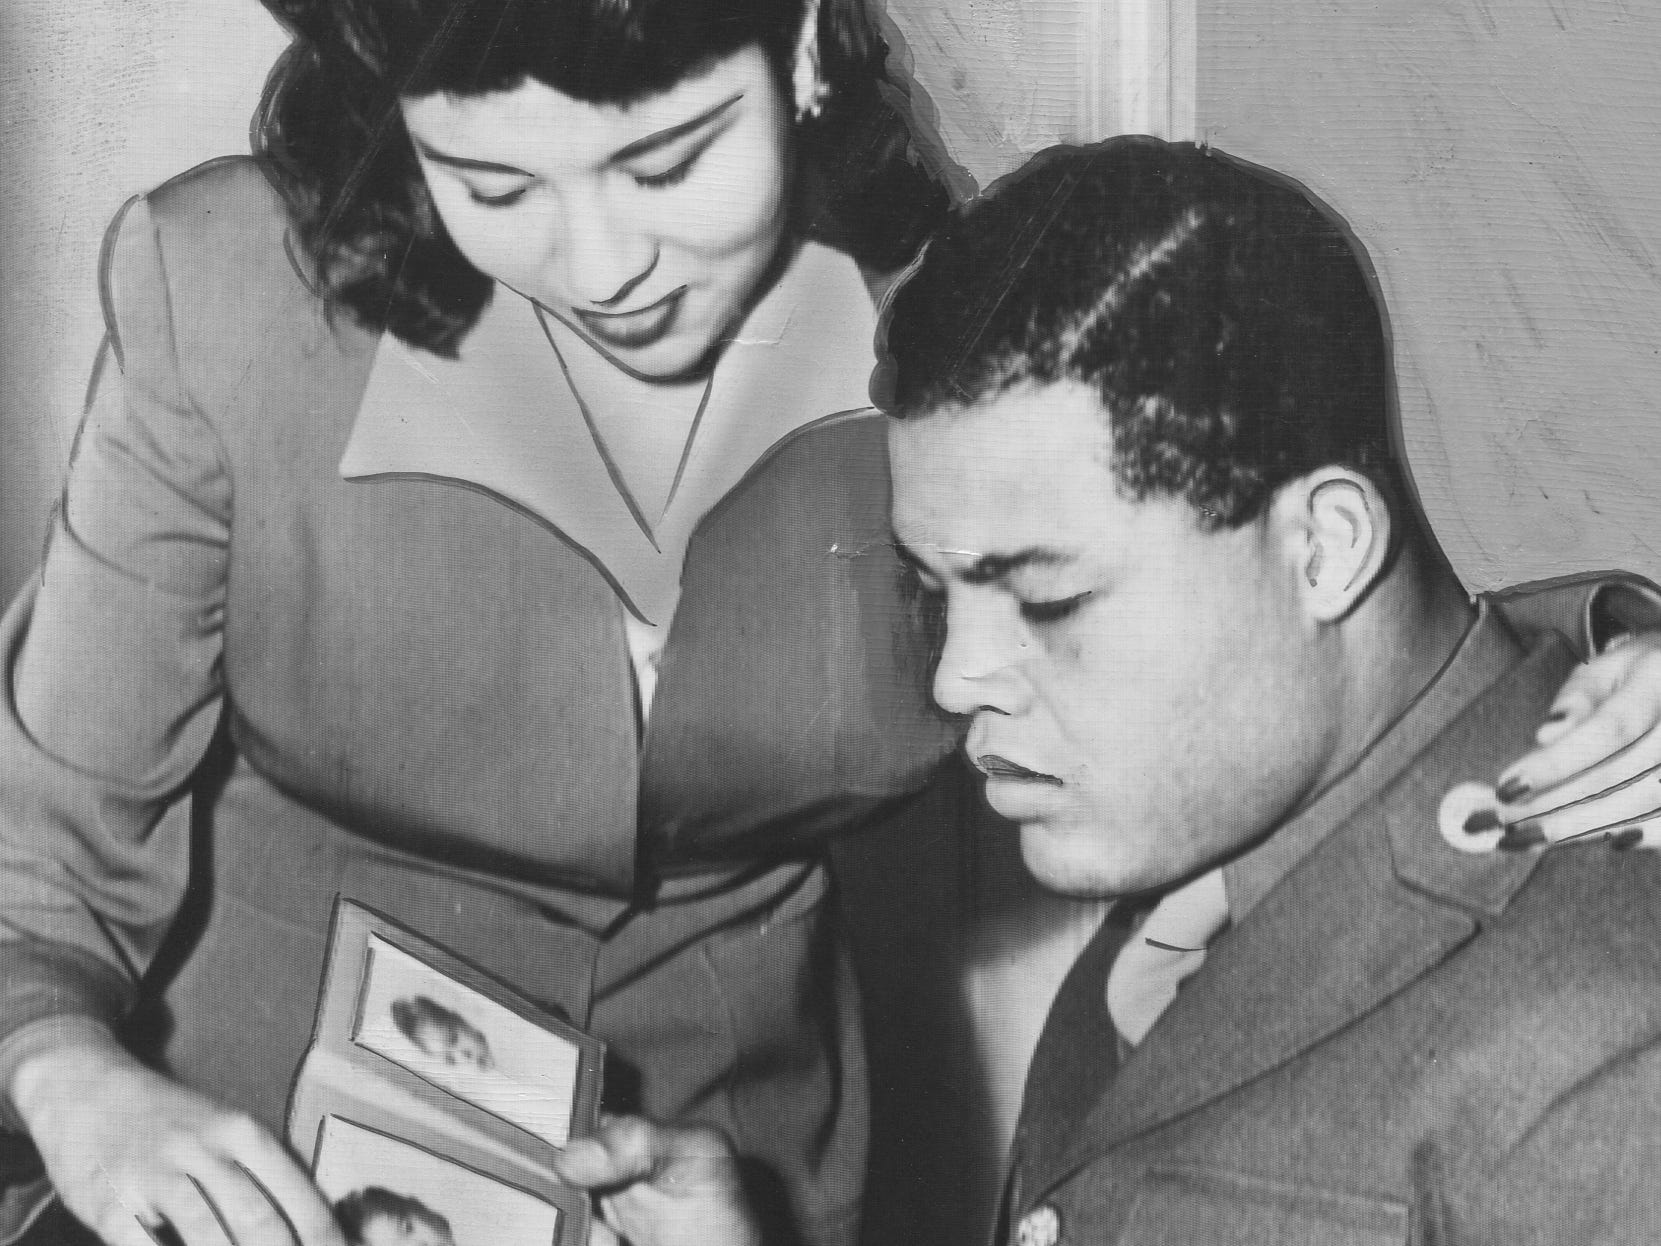 Heavyweight boxing champion Joe Louis, wearing sergeant's stripes, looks at family photos with his wife, Marva Trotter. He served in the Army for 45 months during the war, mostly boxing in exhibition bouts and visiting hospitals across the U.S. and overseas.